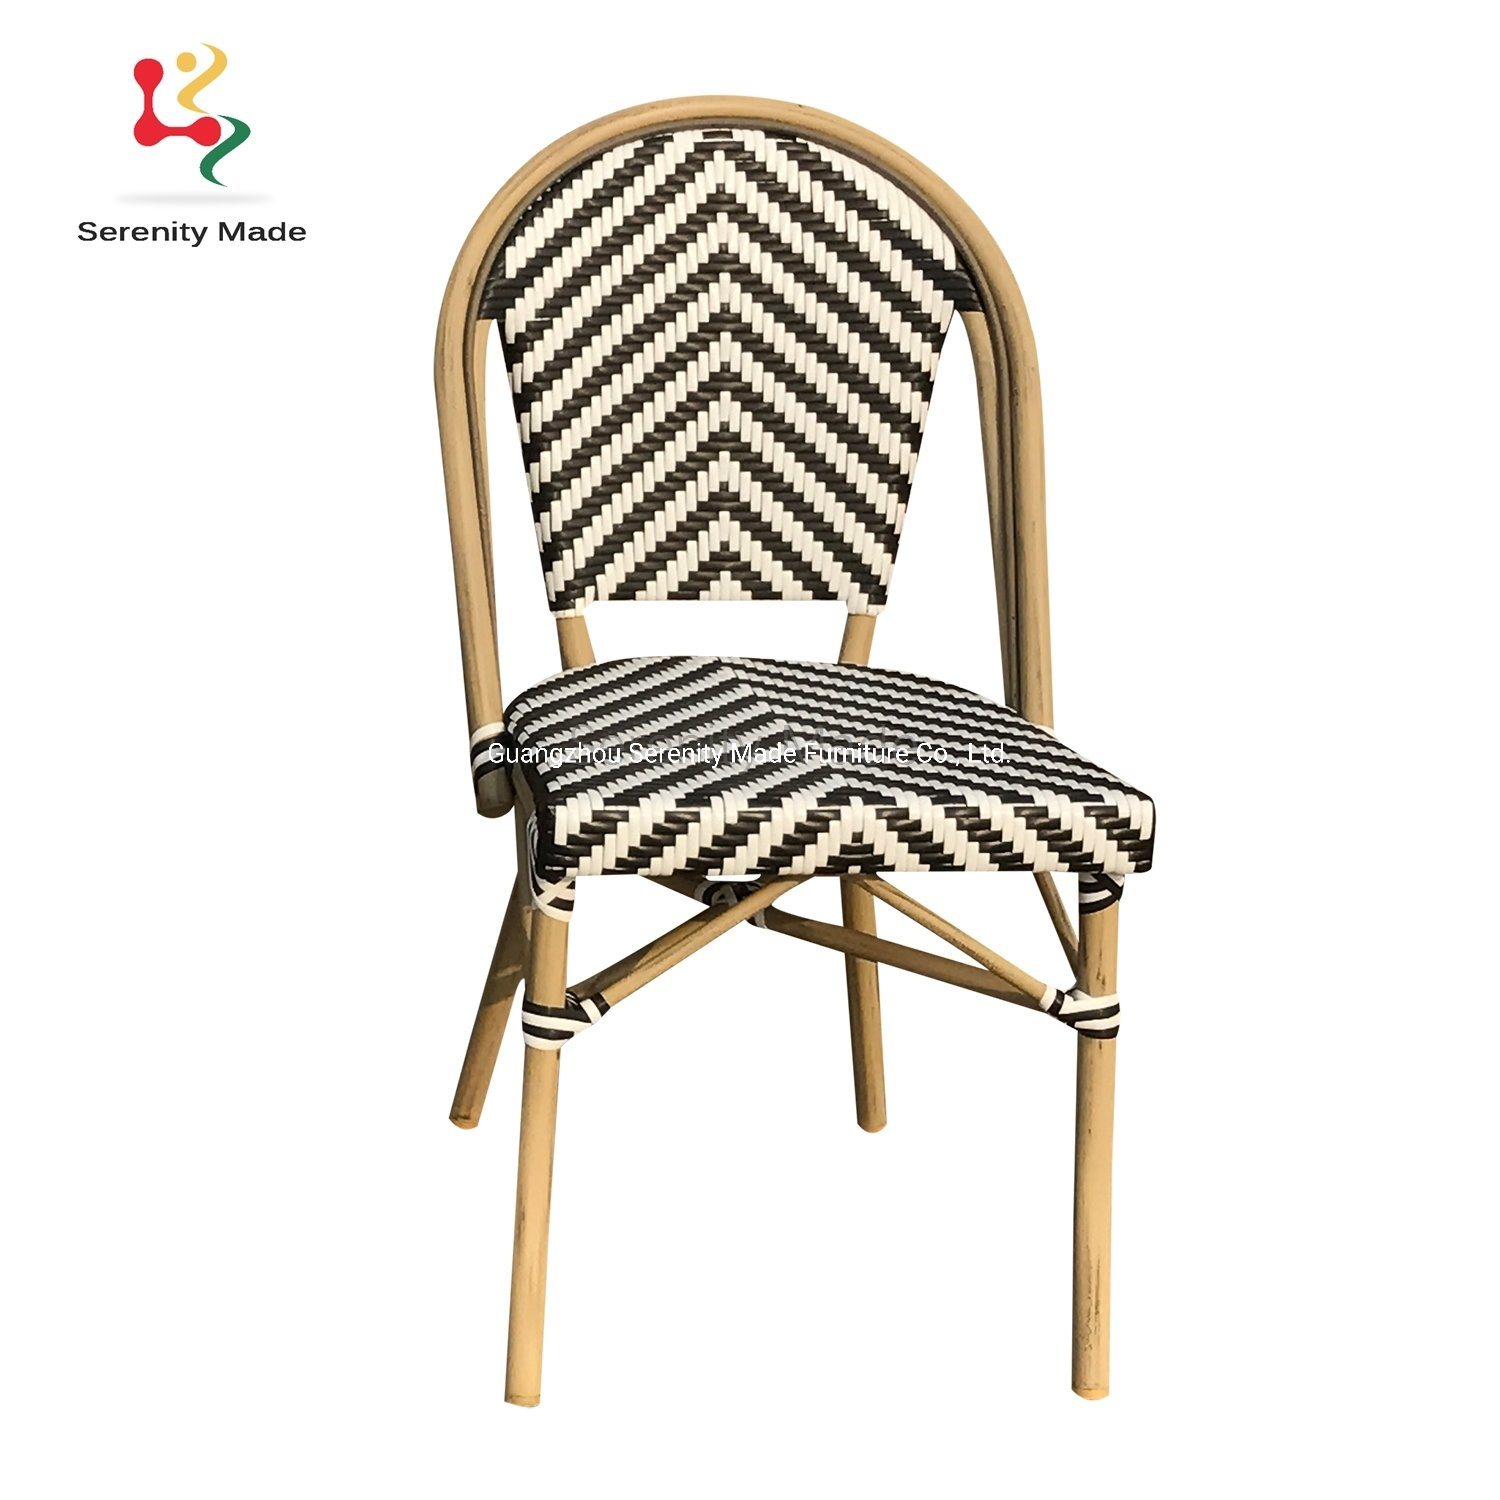 China Cafe Furniture Synthetic Rattan Outdoor Bamboo Dining Chair Rattan Furniture China Outdoor Furniture China